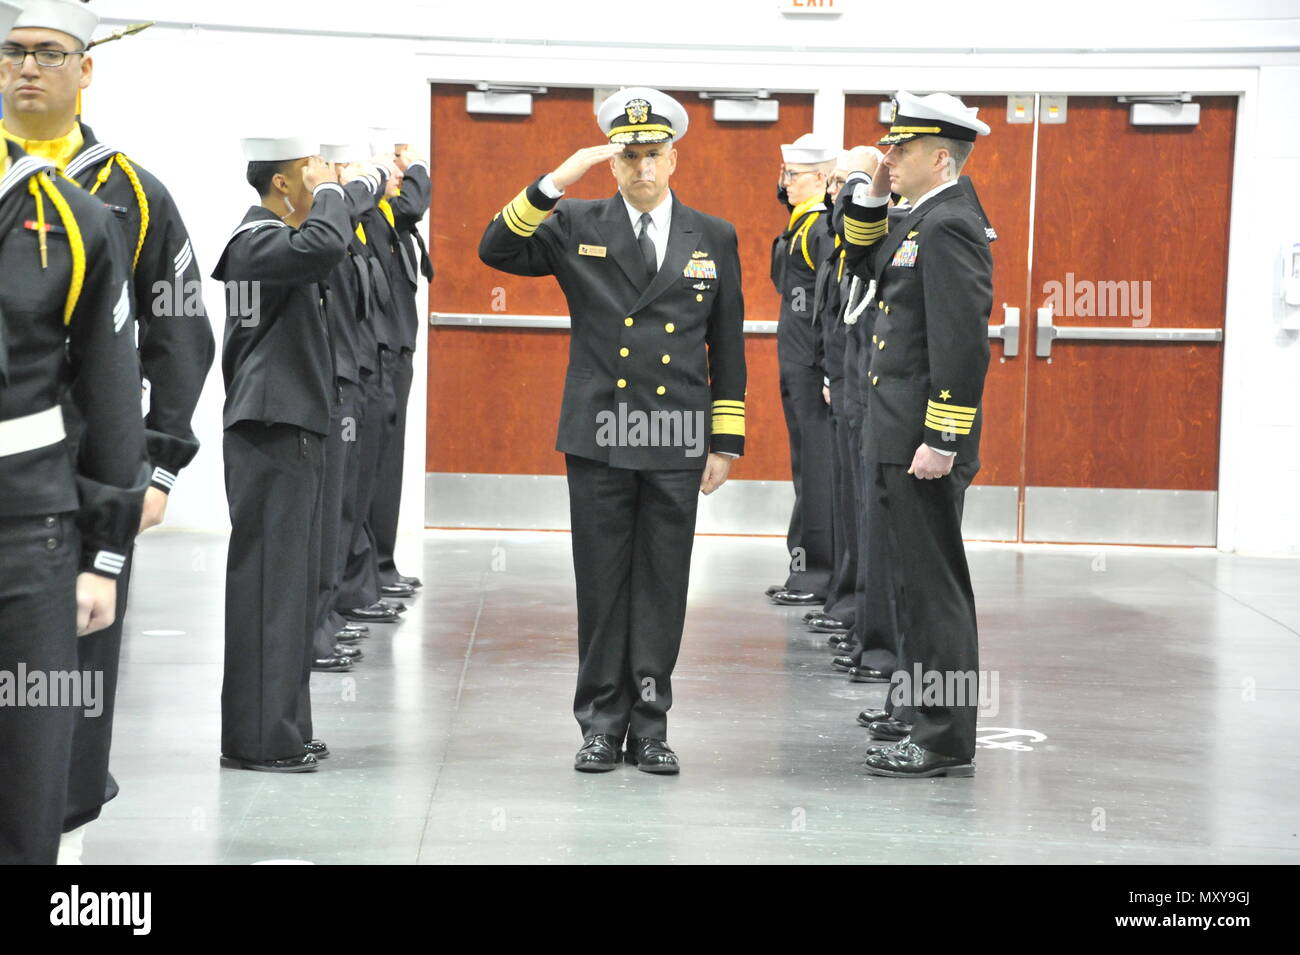 161216-N-CM124-129  GREAT LAKES, Ill. (Dec. 16, 2016) Chief of Naval Personnel Robert P. Burke is introduced to the guests at the Pass-In-Review ceremony Dec. 16 at Midway Ceremony Drill Hall, Recruit Training Command. Burke served as the ceremony's reviewing officer where just over 940 recruits graduated from the Navy's only boot camp.  (U.S. Navy photo by Susan Krawczyk/Released). - Stock Image